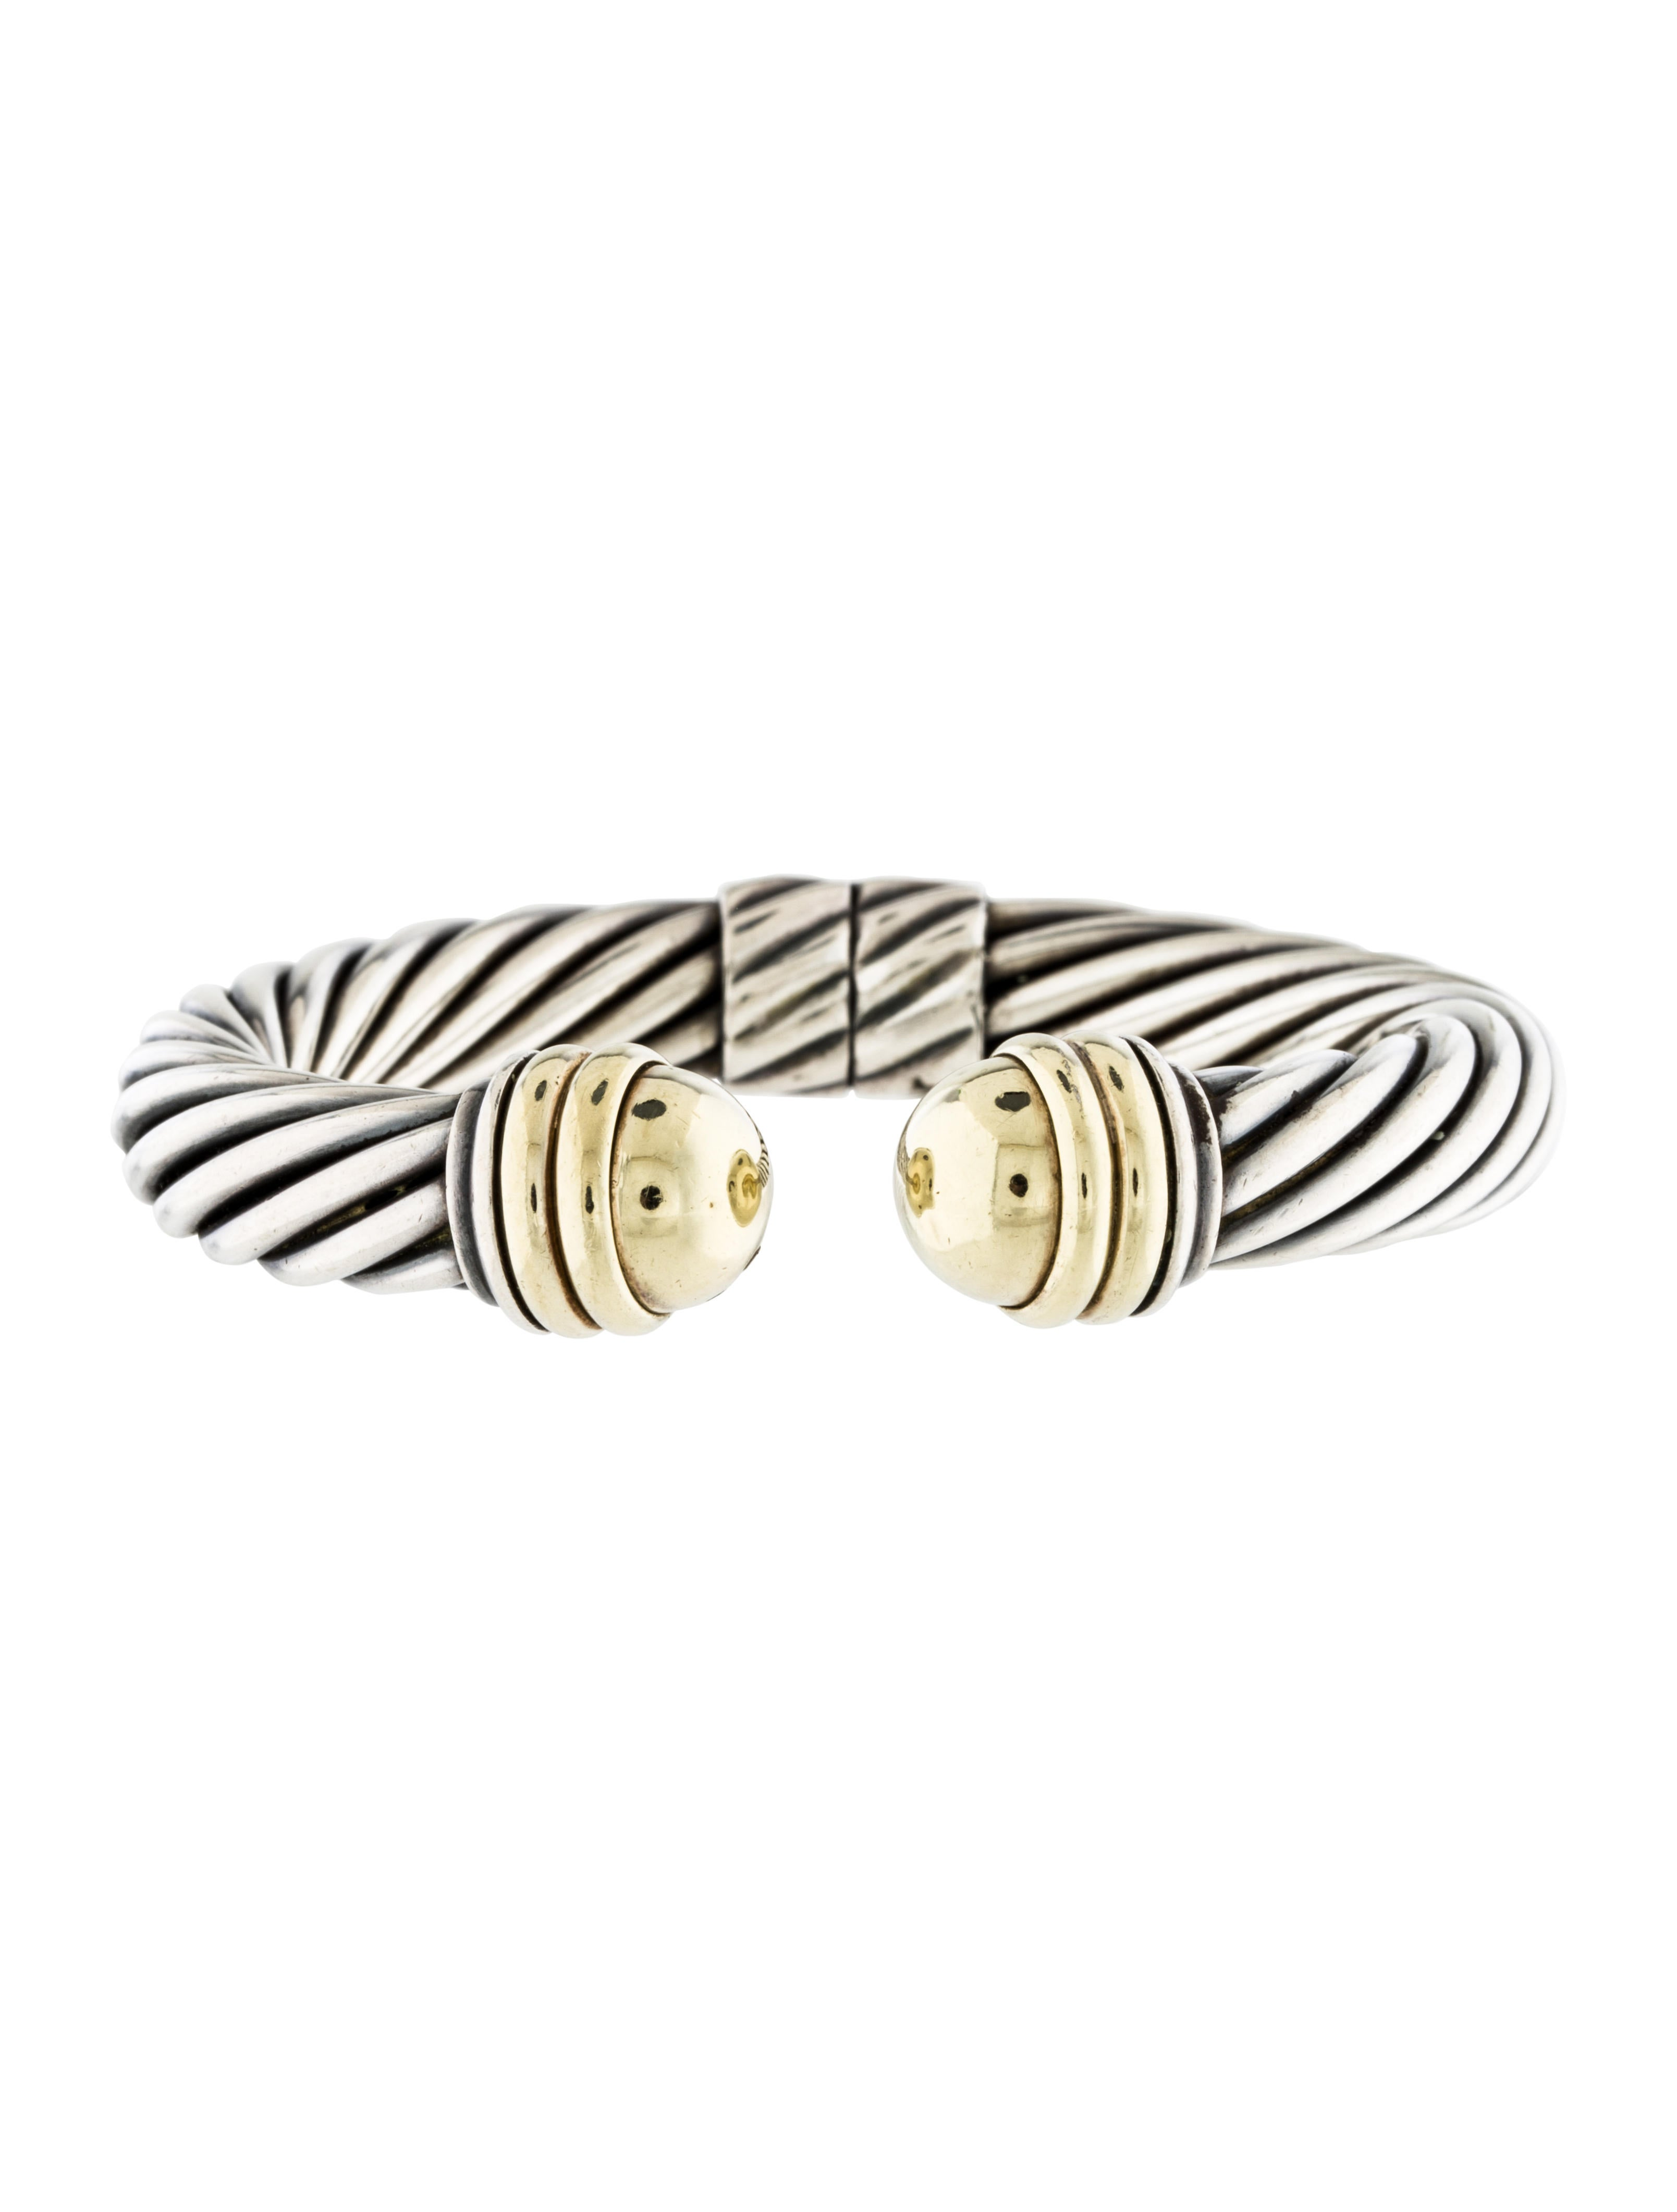 David yurman cable classics cuff bracelet bracelets for David yurman inspired bracelet cable